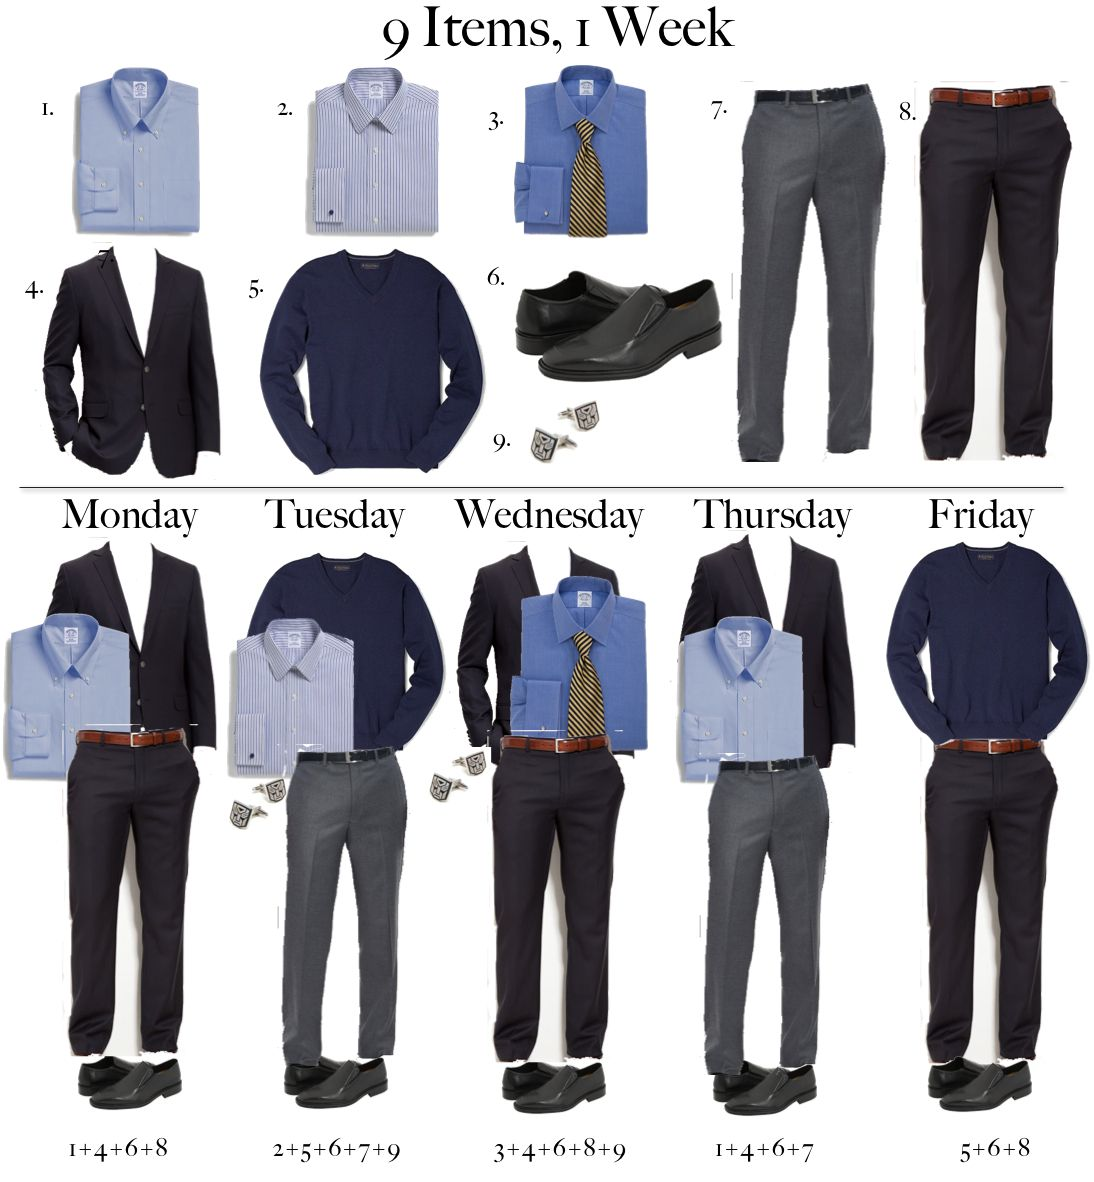 best images about men conference wear business casual on 17 best images about men conference wear business casual suits down shirt and belt